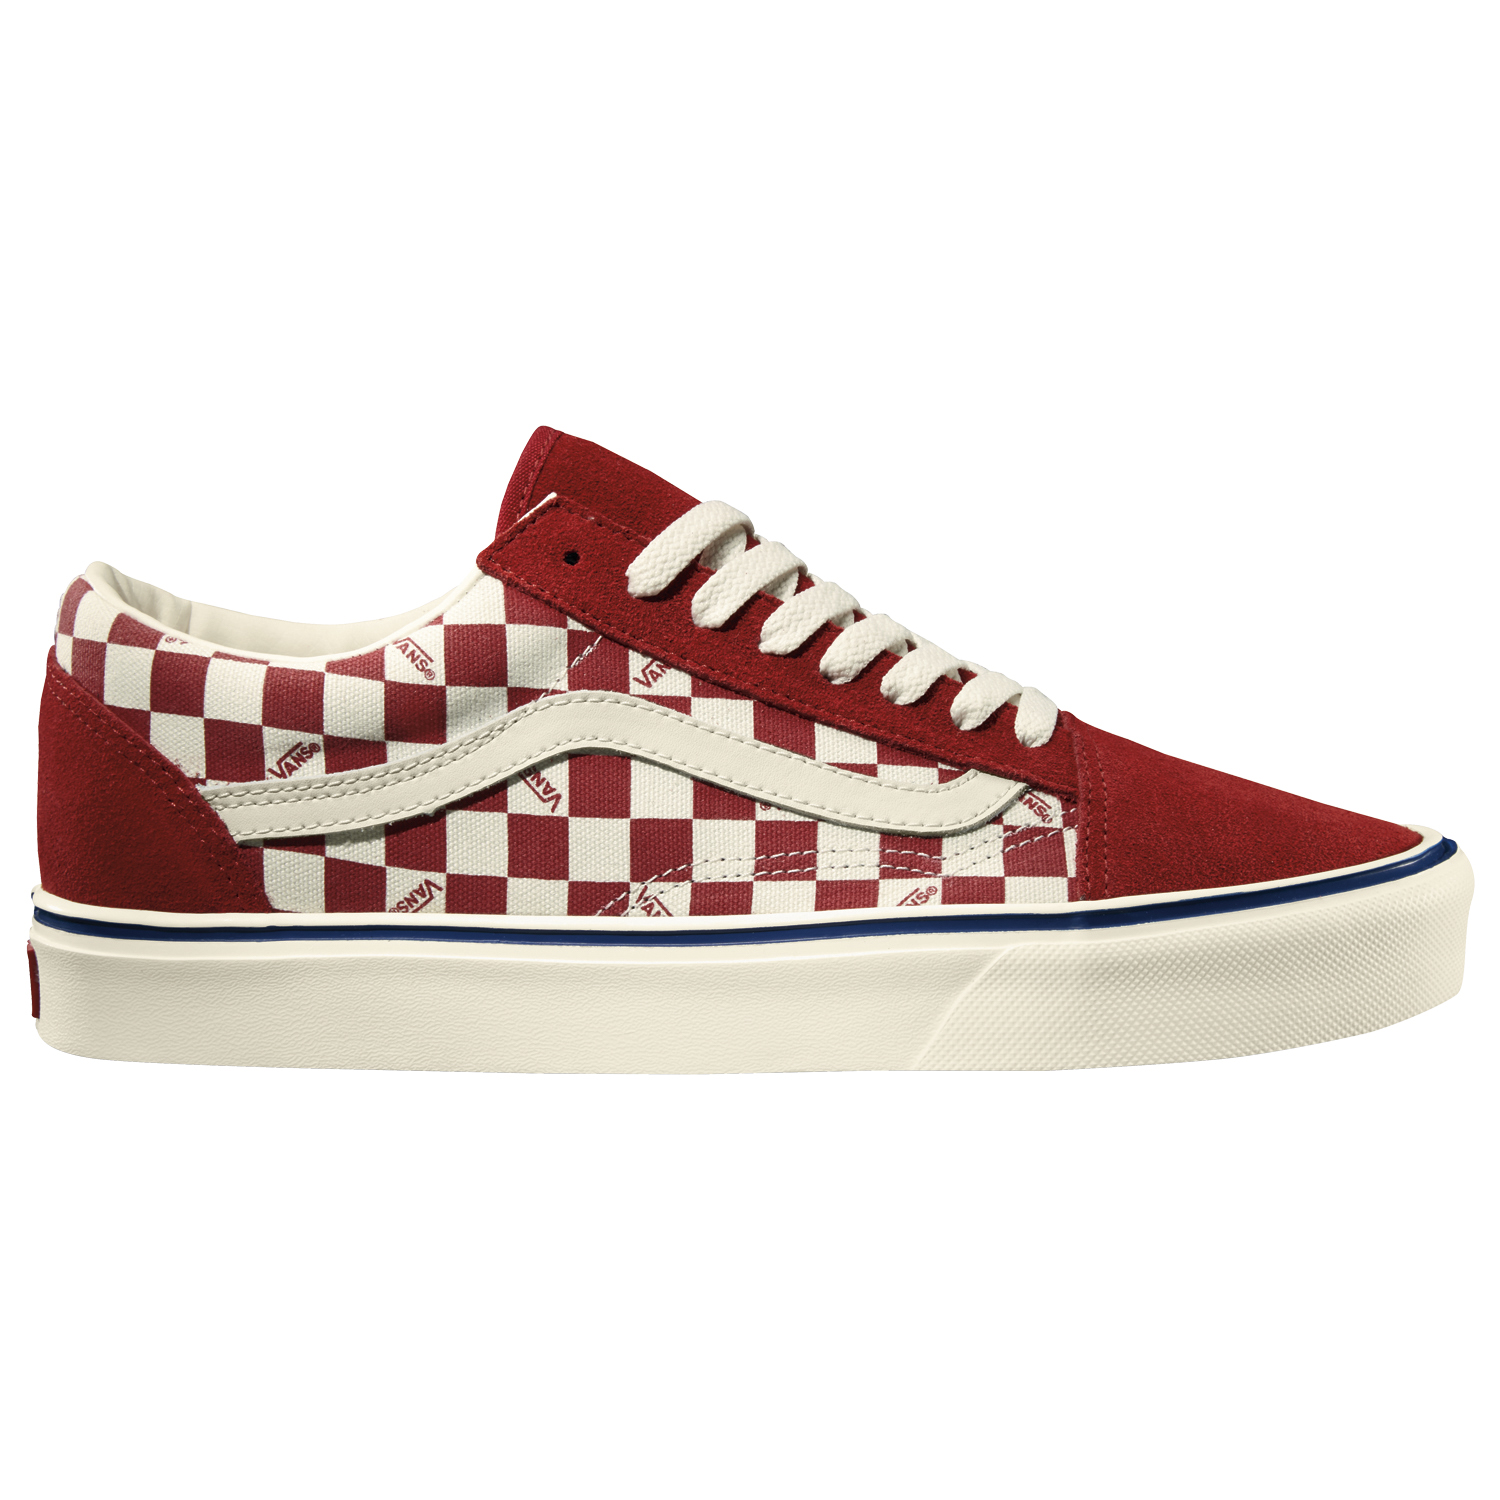 vans-old-skool-lite-seeing-checkers-chili-marshmellow-159-90